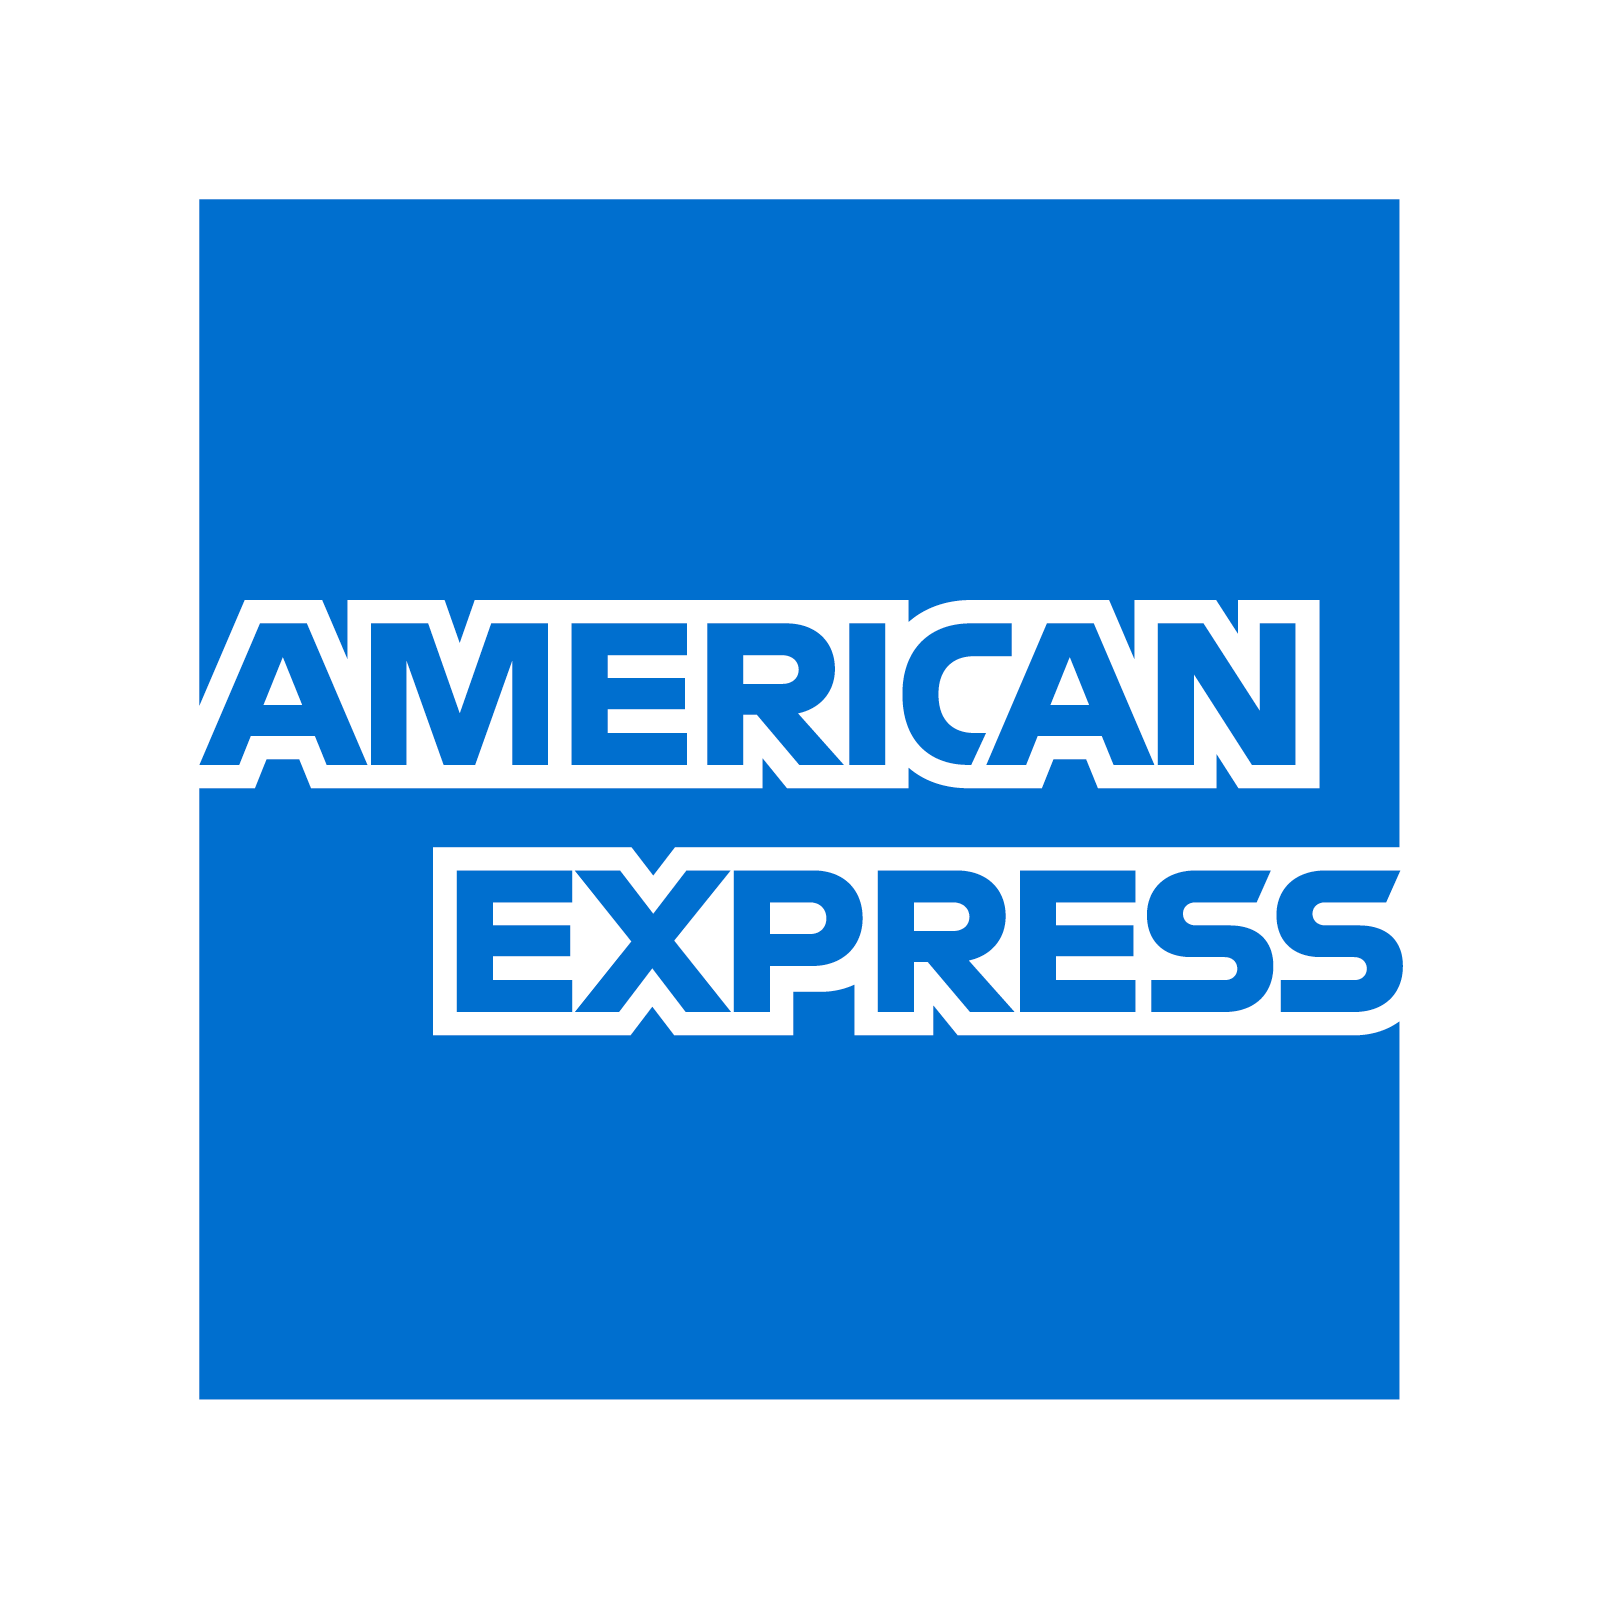 Does Best Buy accept American Express?